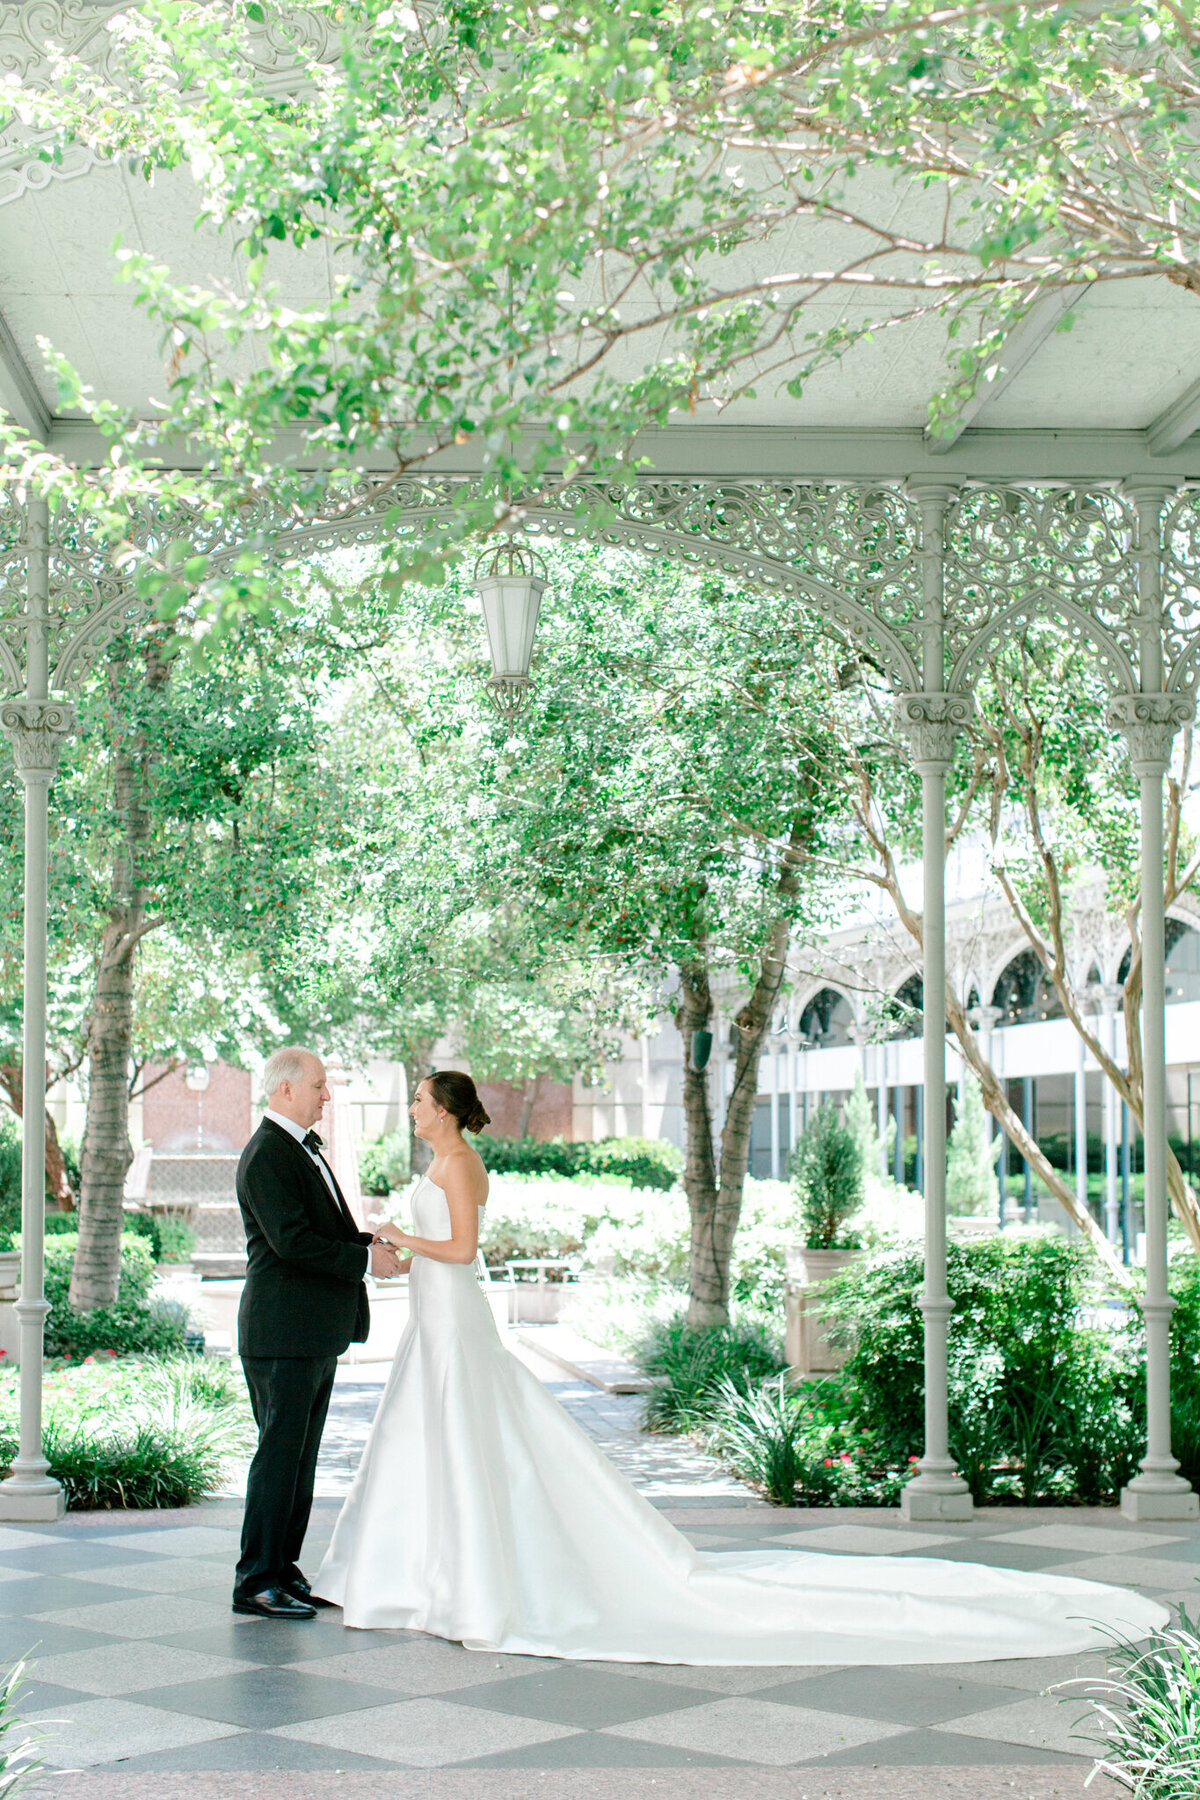 Wedding at the Crescent Court Hotel and Highland Park United Methodist Church in Dallas | Sami Kathryn Photography | DFW Wedding Photographer-45